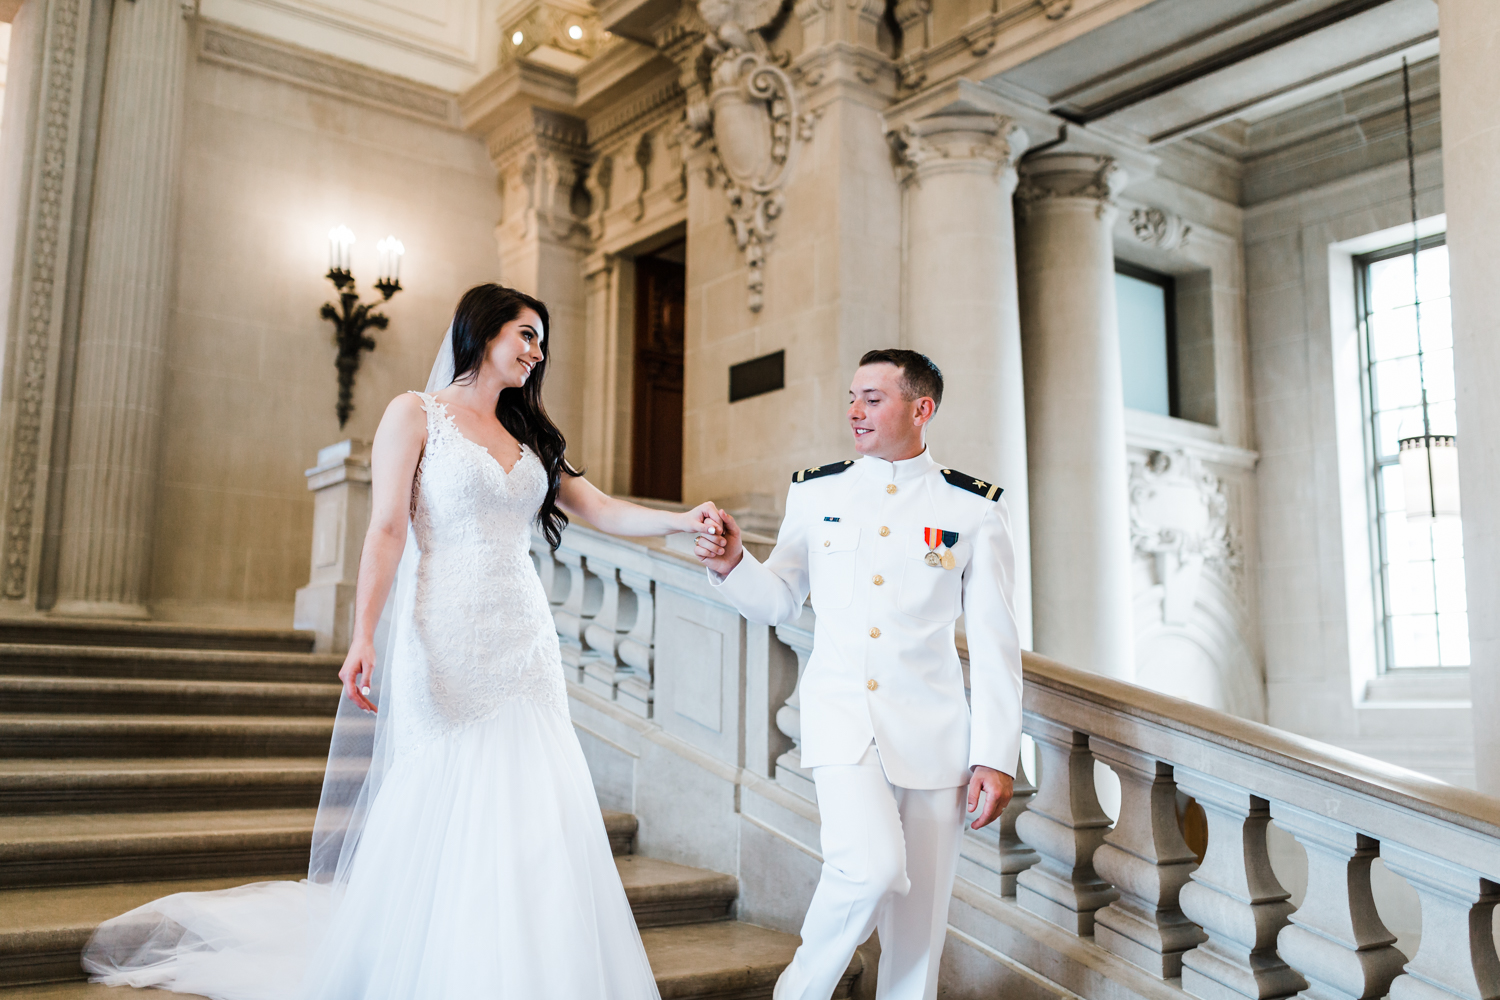 beautiful bride and her groom at naval academy wedding